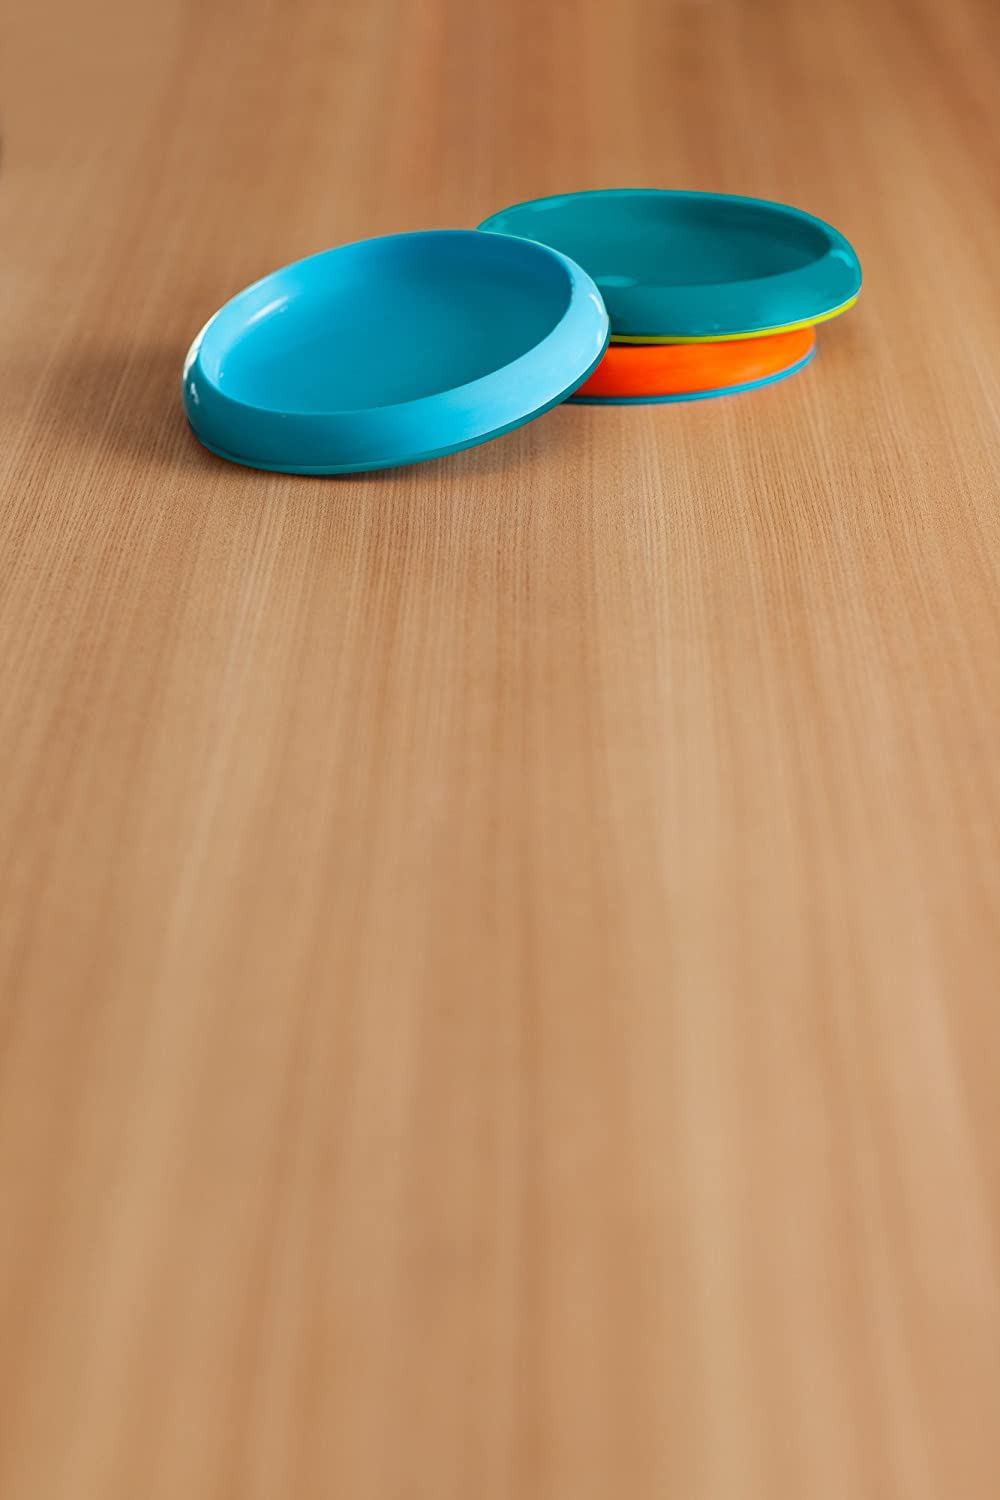 Boon PLATE Edgeless Nonskid Plate Blue//Orange//Green